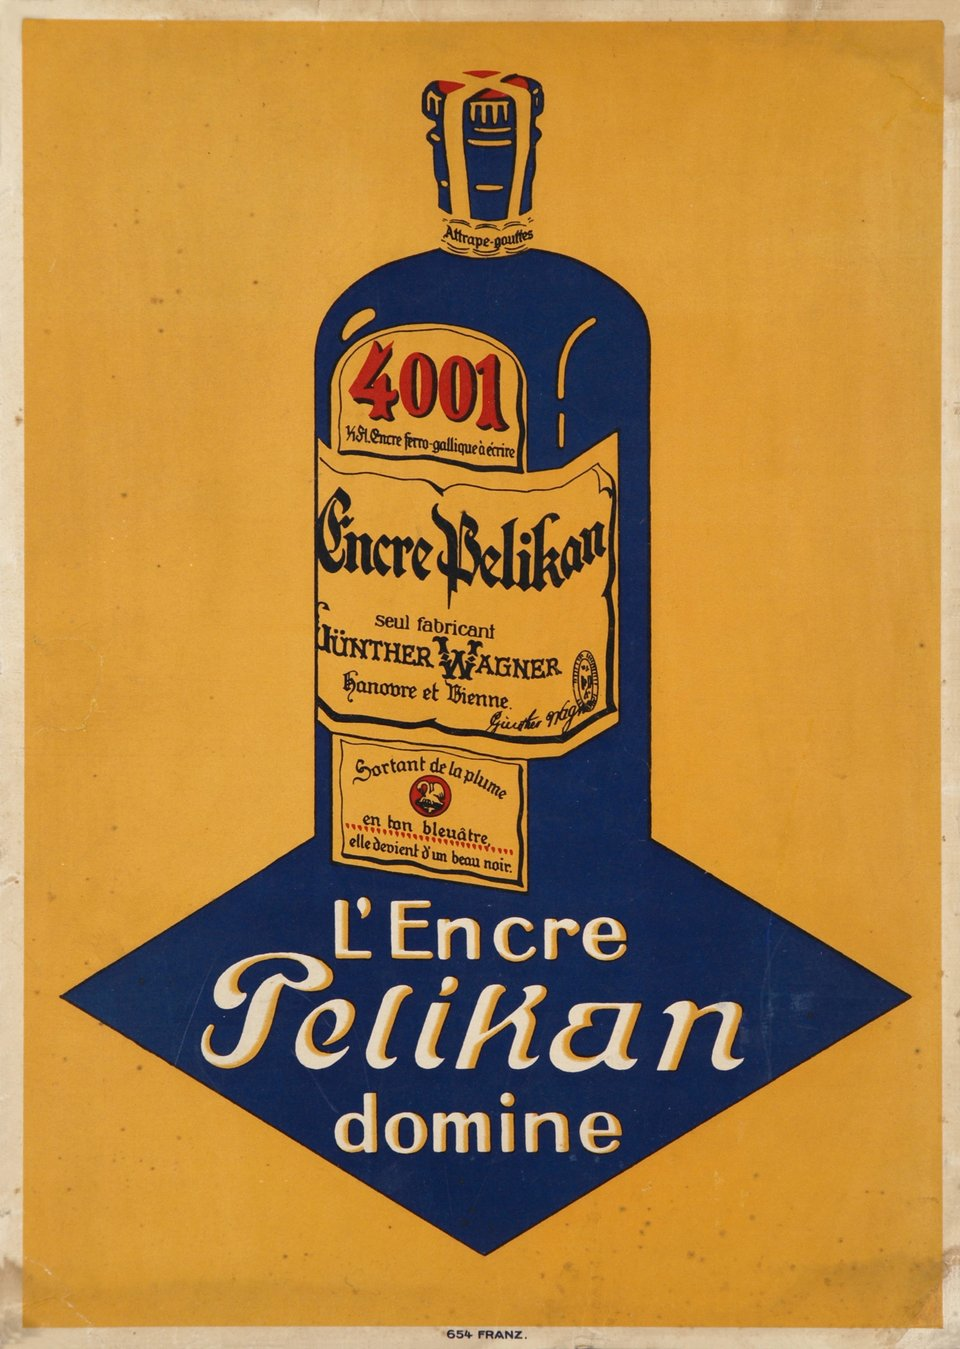 L'encre Pelikan domine. – Vintage poster – ANONYME – 1910